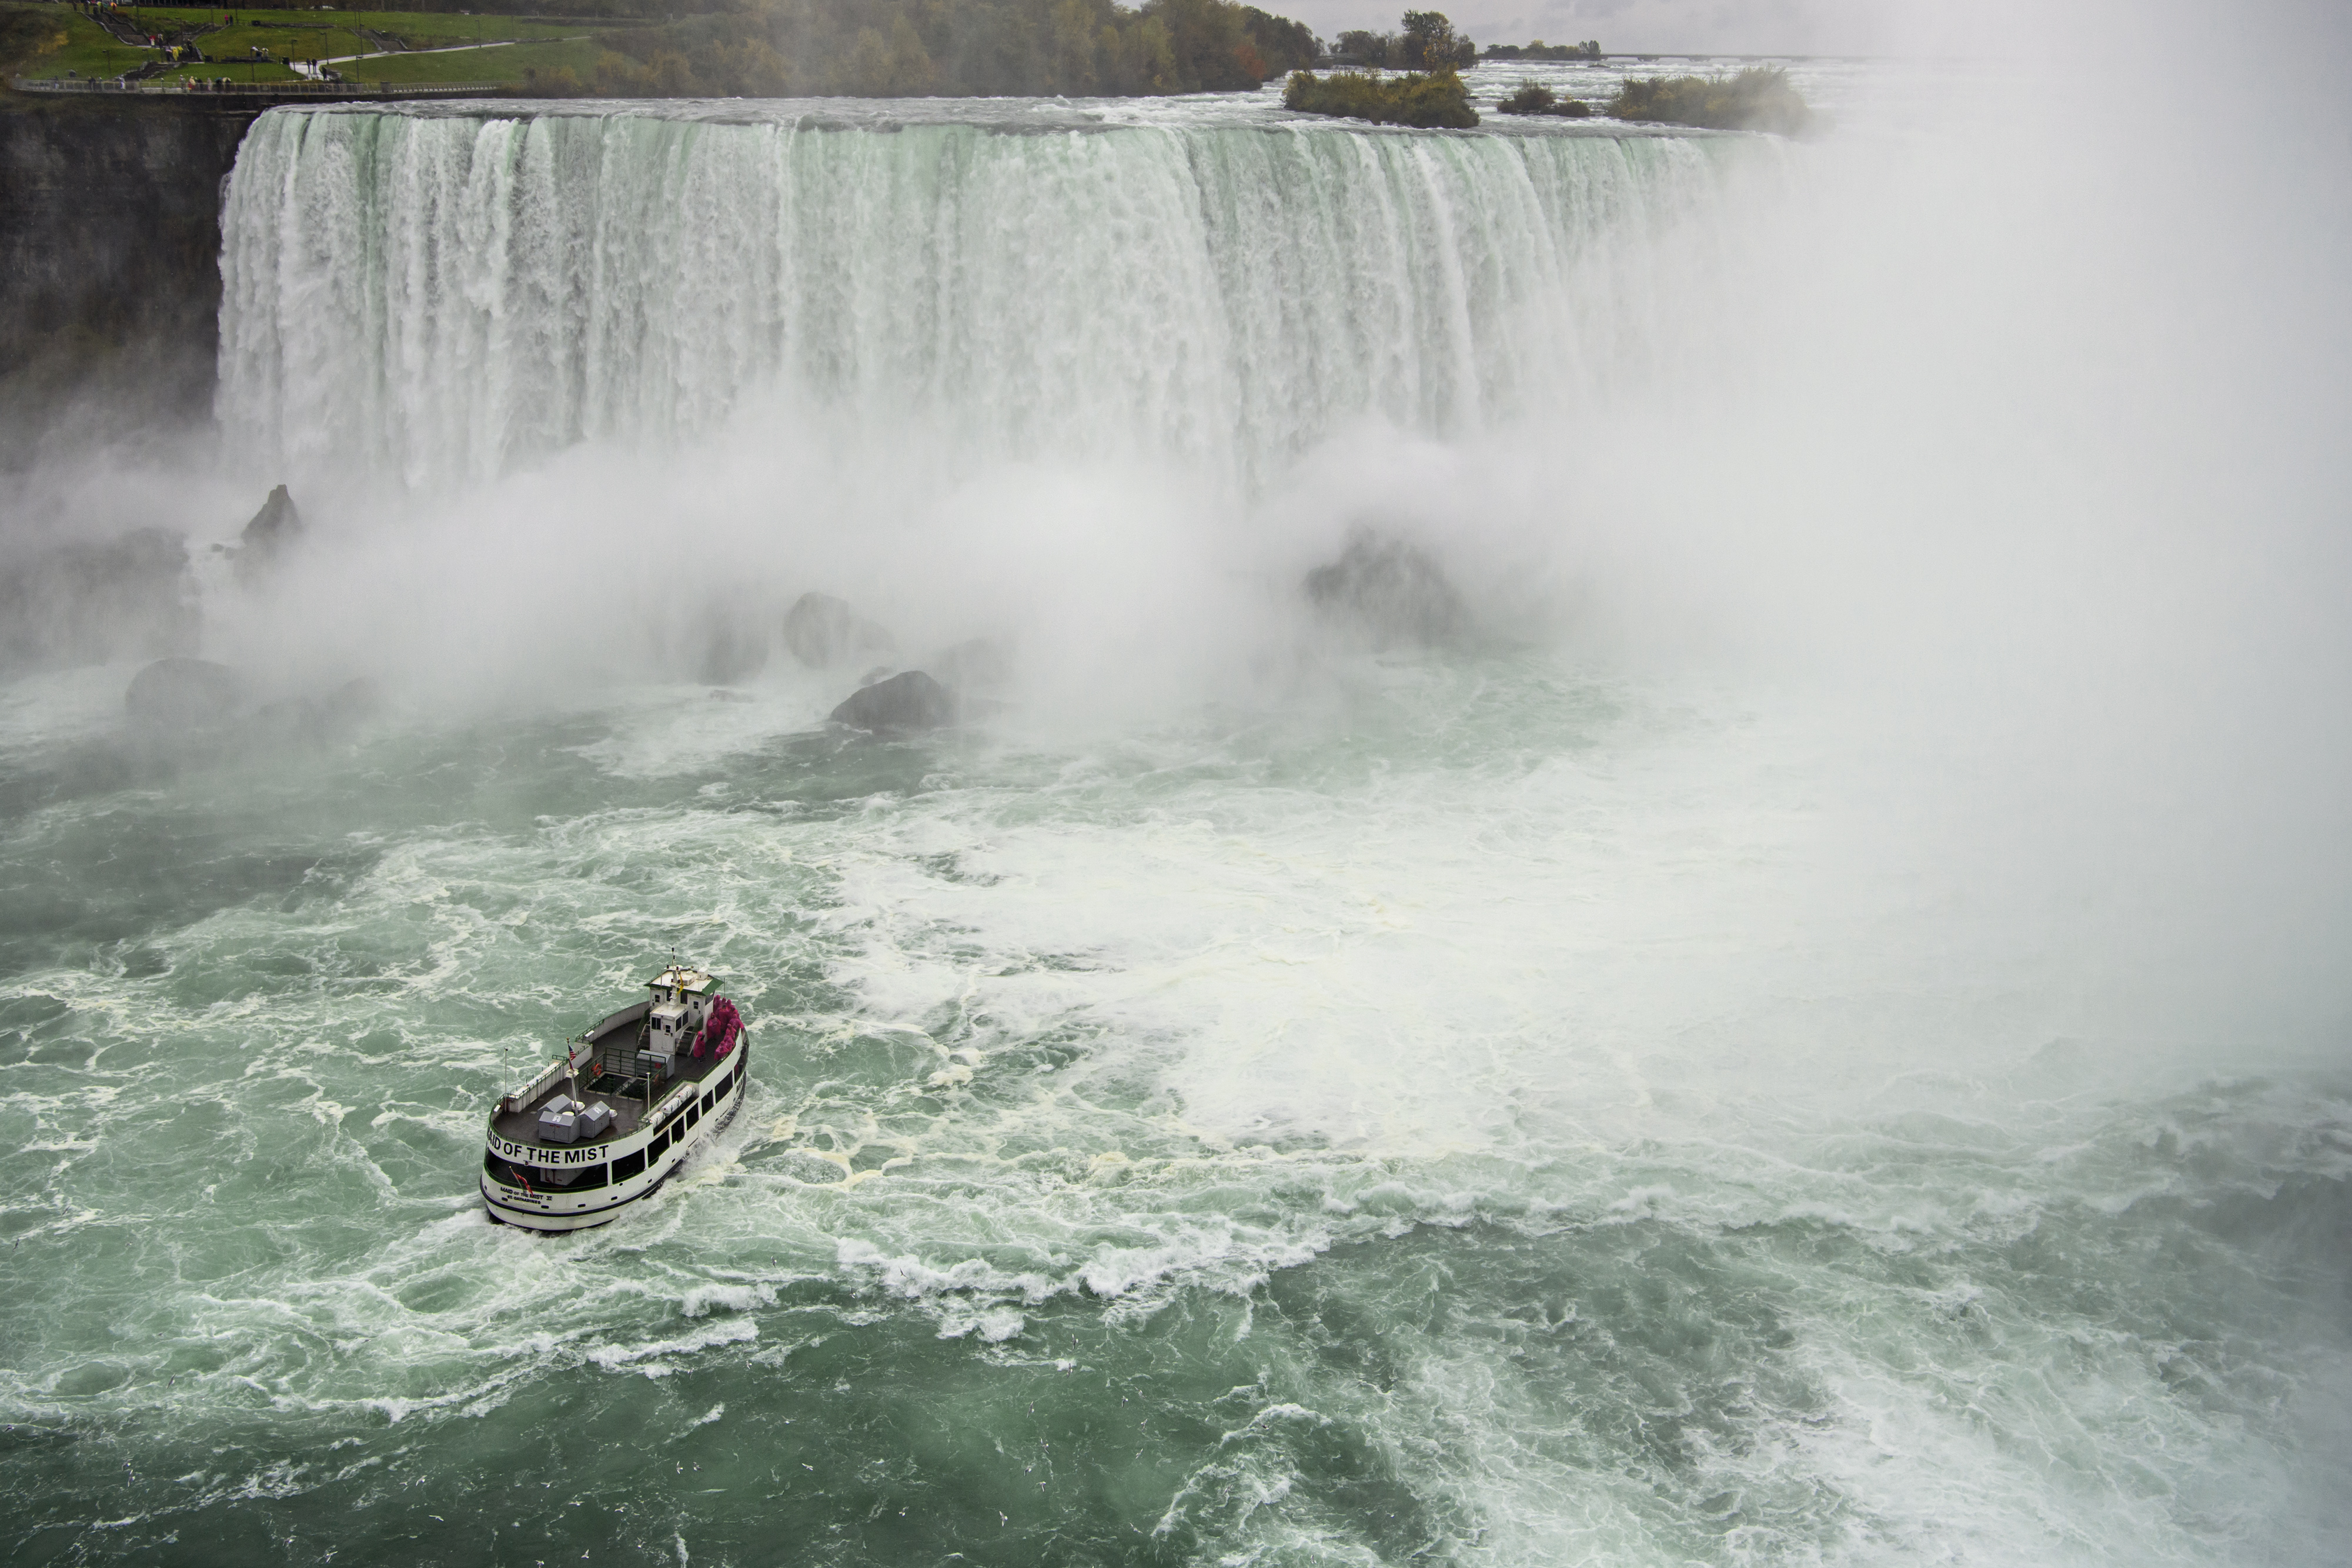 Previous Maid of the Mist boat tours at Niagara Falls ran on diesel.